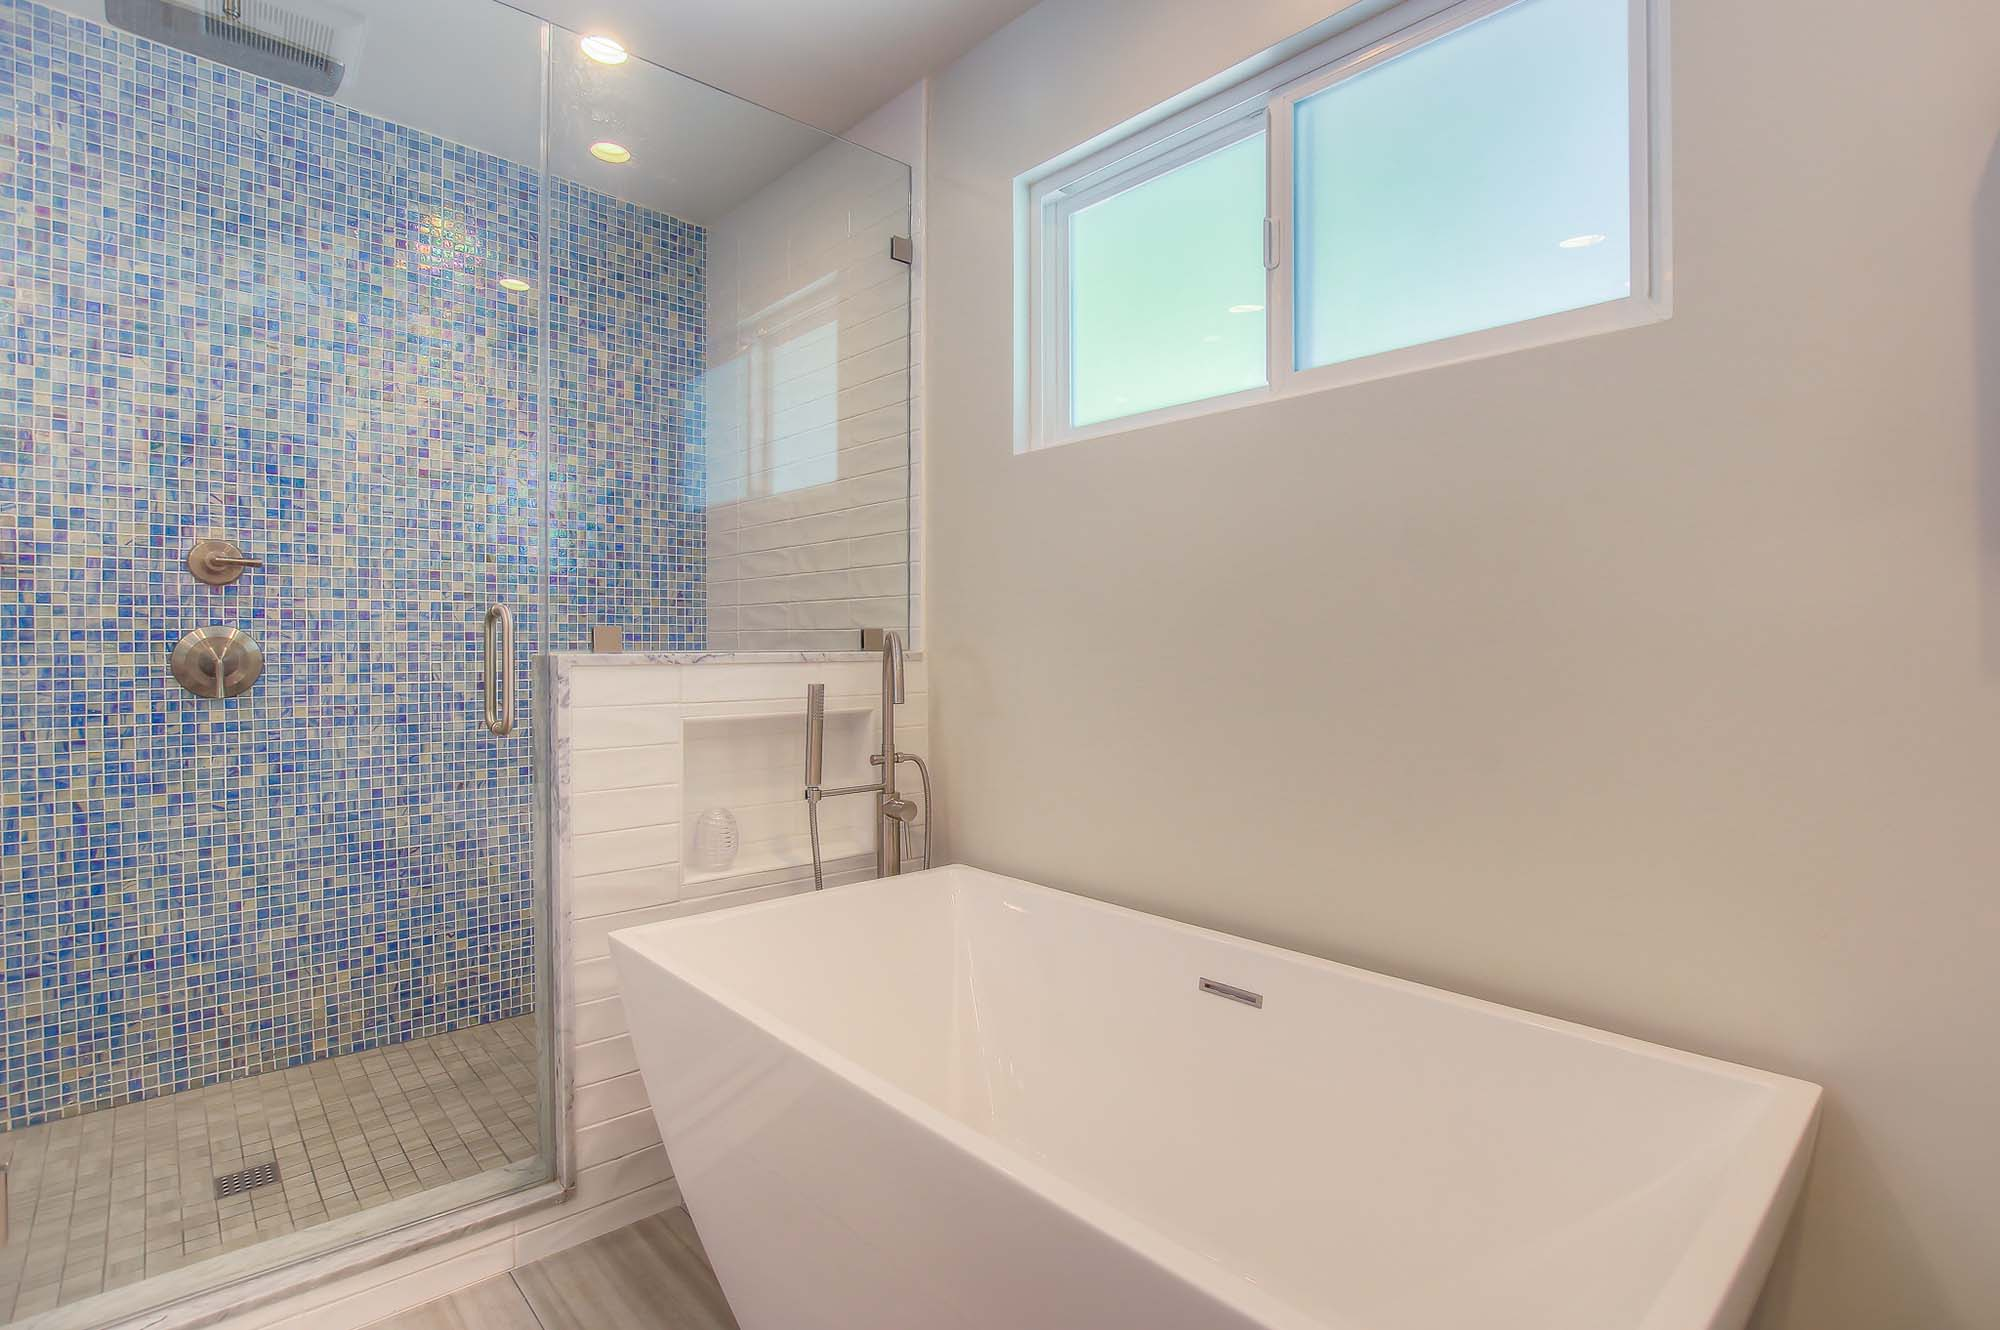 burbank bathroom tiles side view.jpg